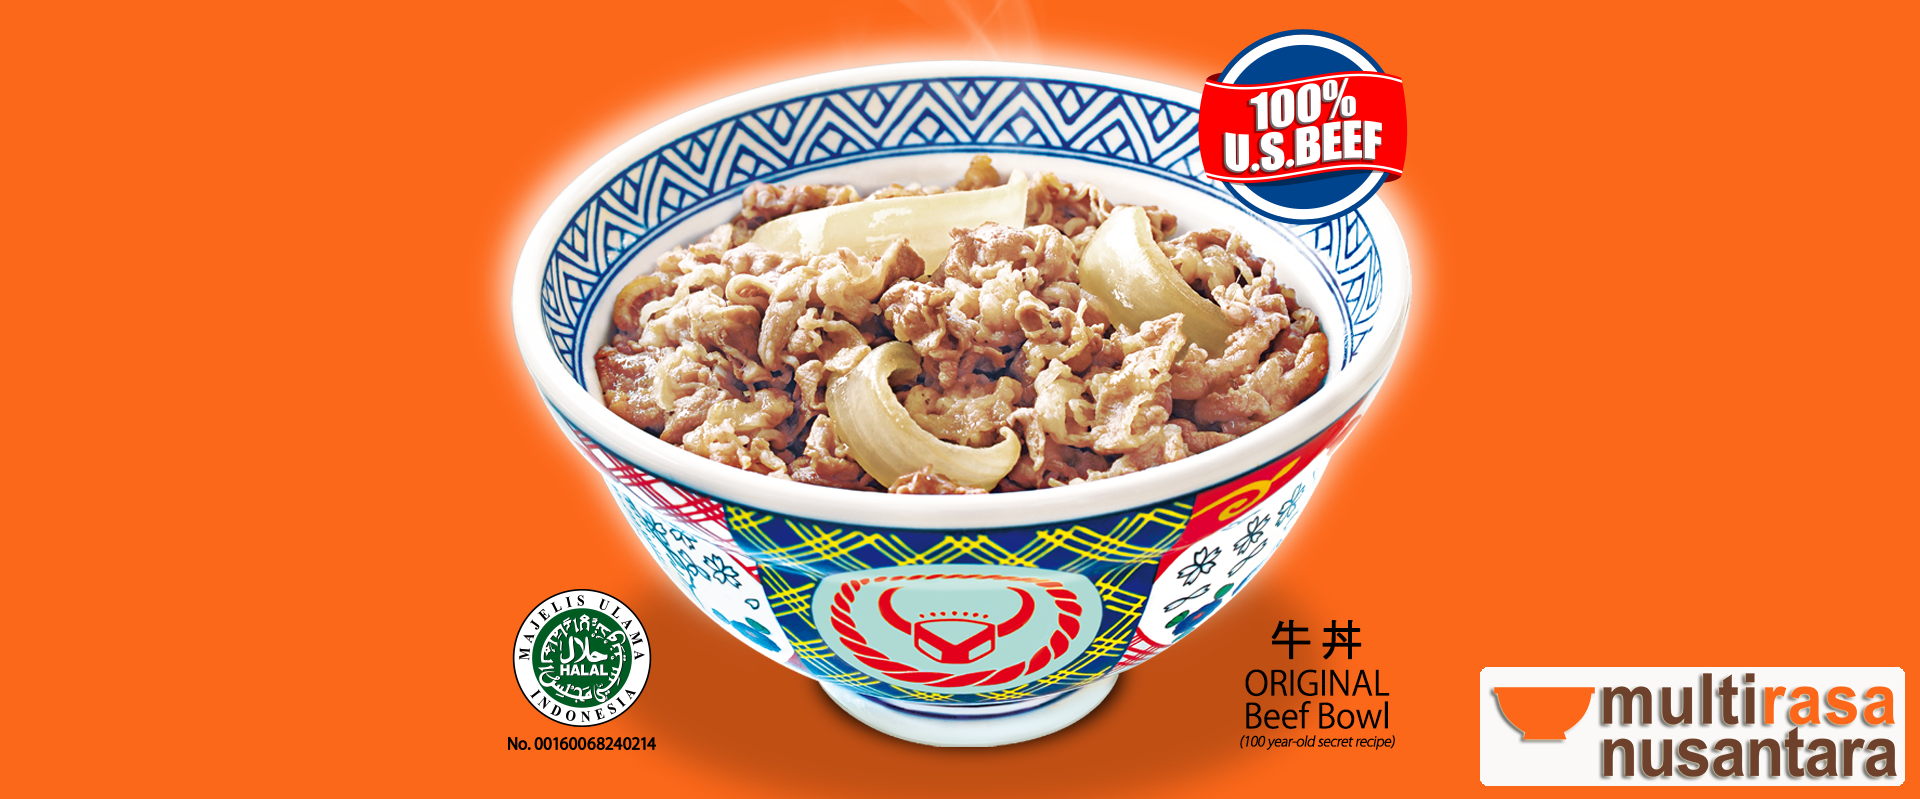 Japan´s No. 1 Beef Bowl since 1899, Tokyo - Japan, Now in Indonesia.